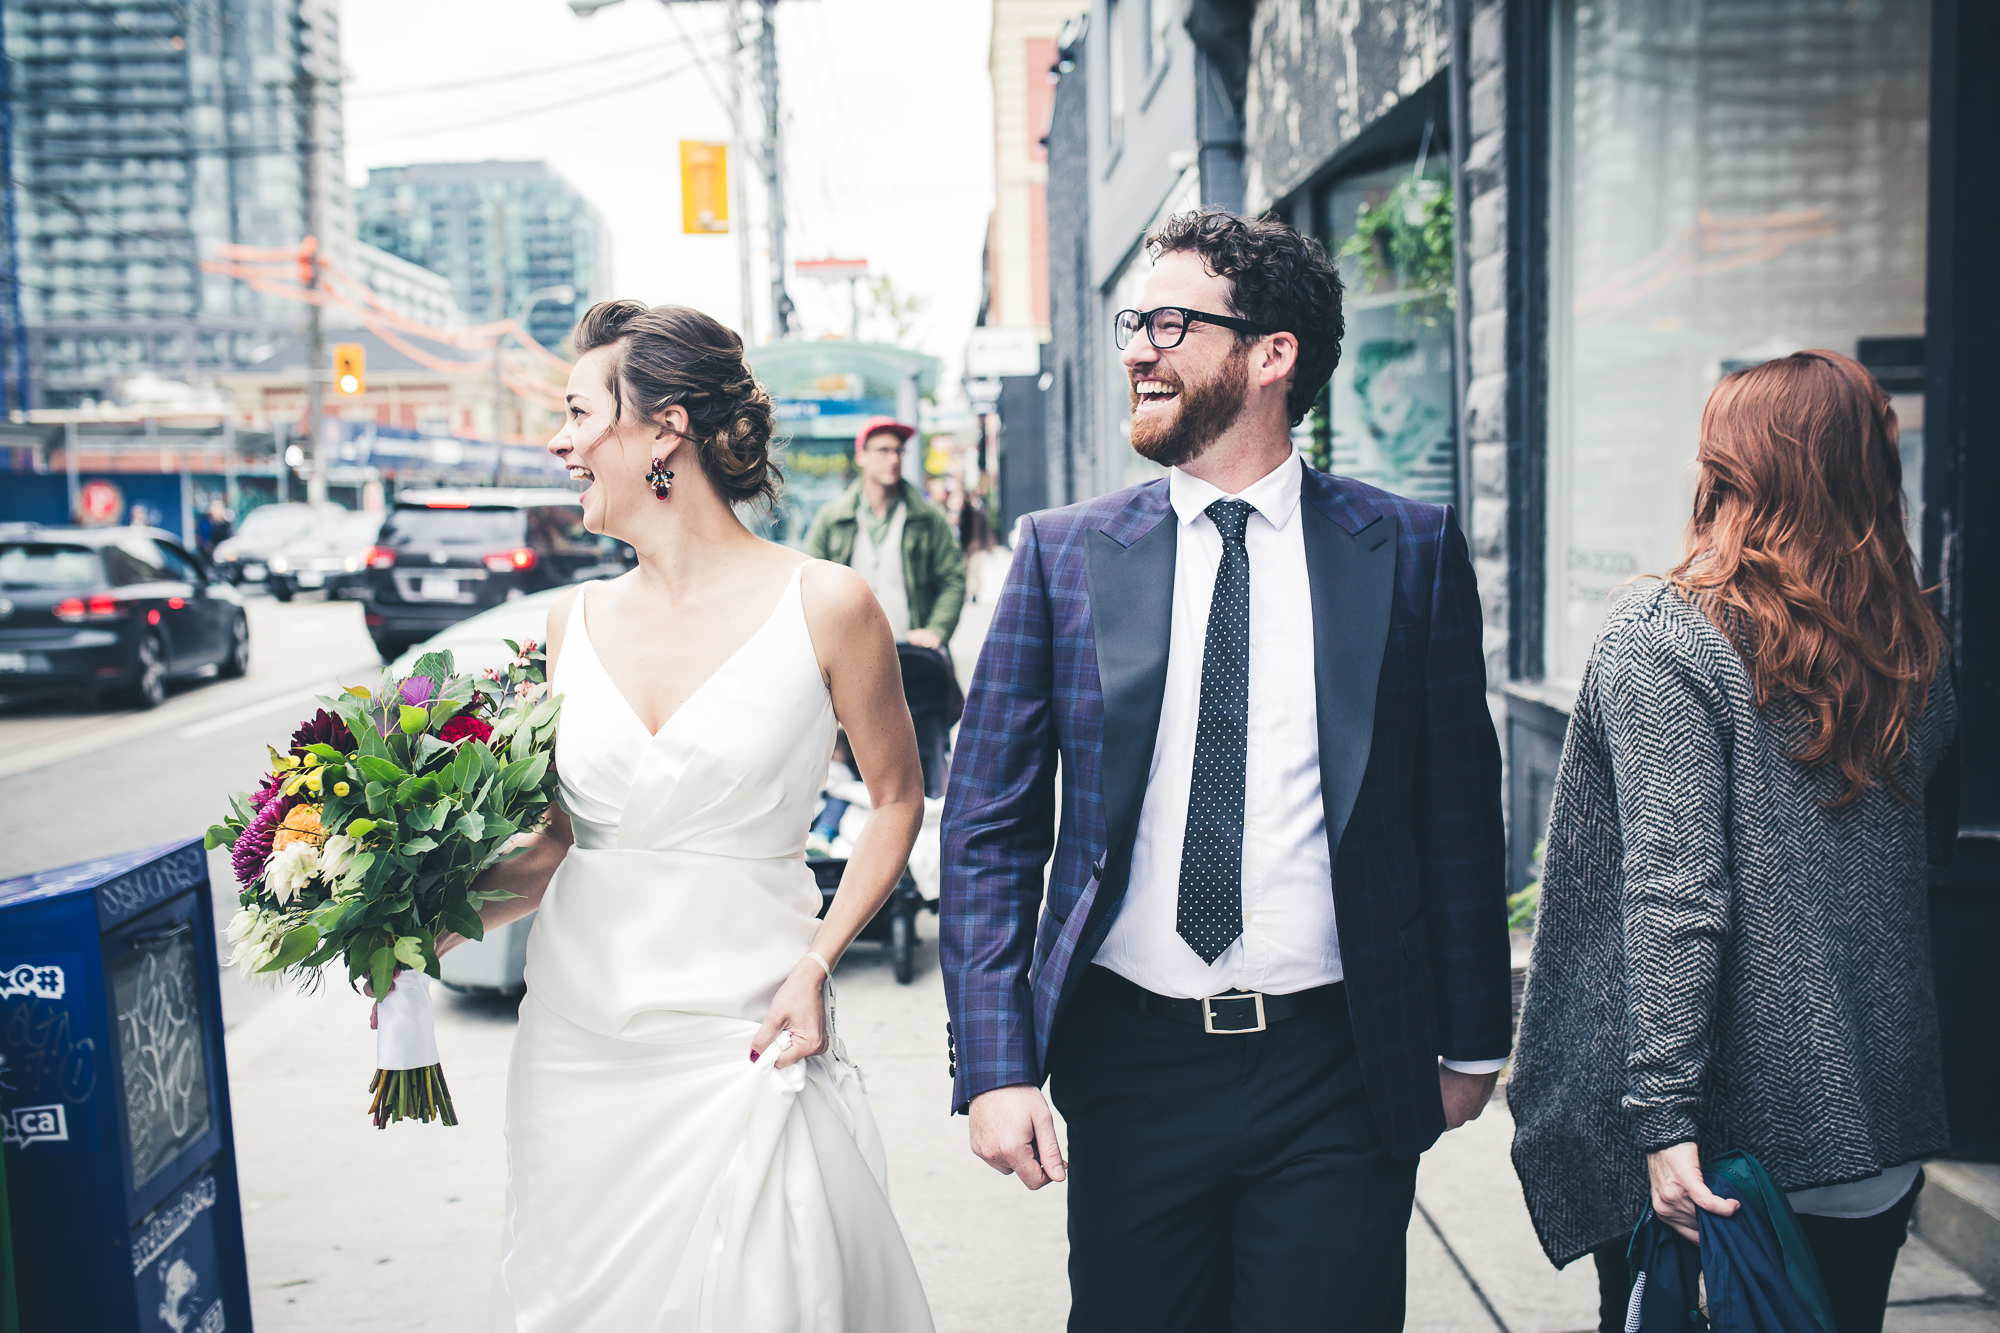 Leah-Chris-Ryan-Bolton-INLY-Events-Wedding-Toronto-Art-Gallery-0191.jpg